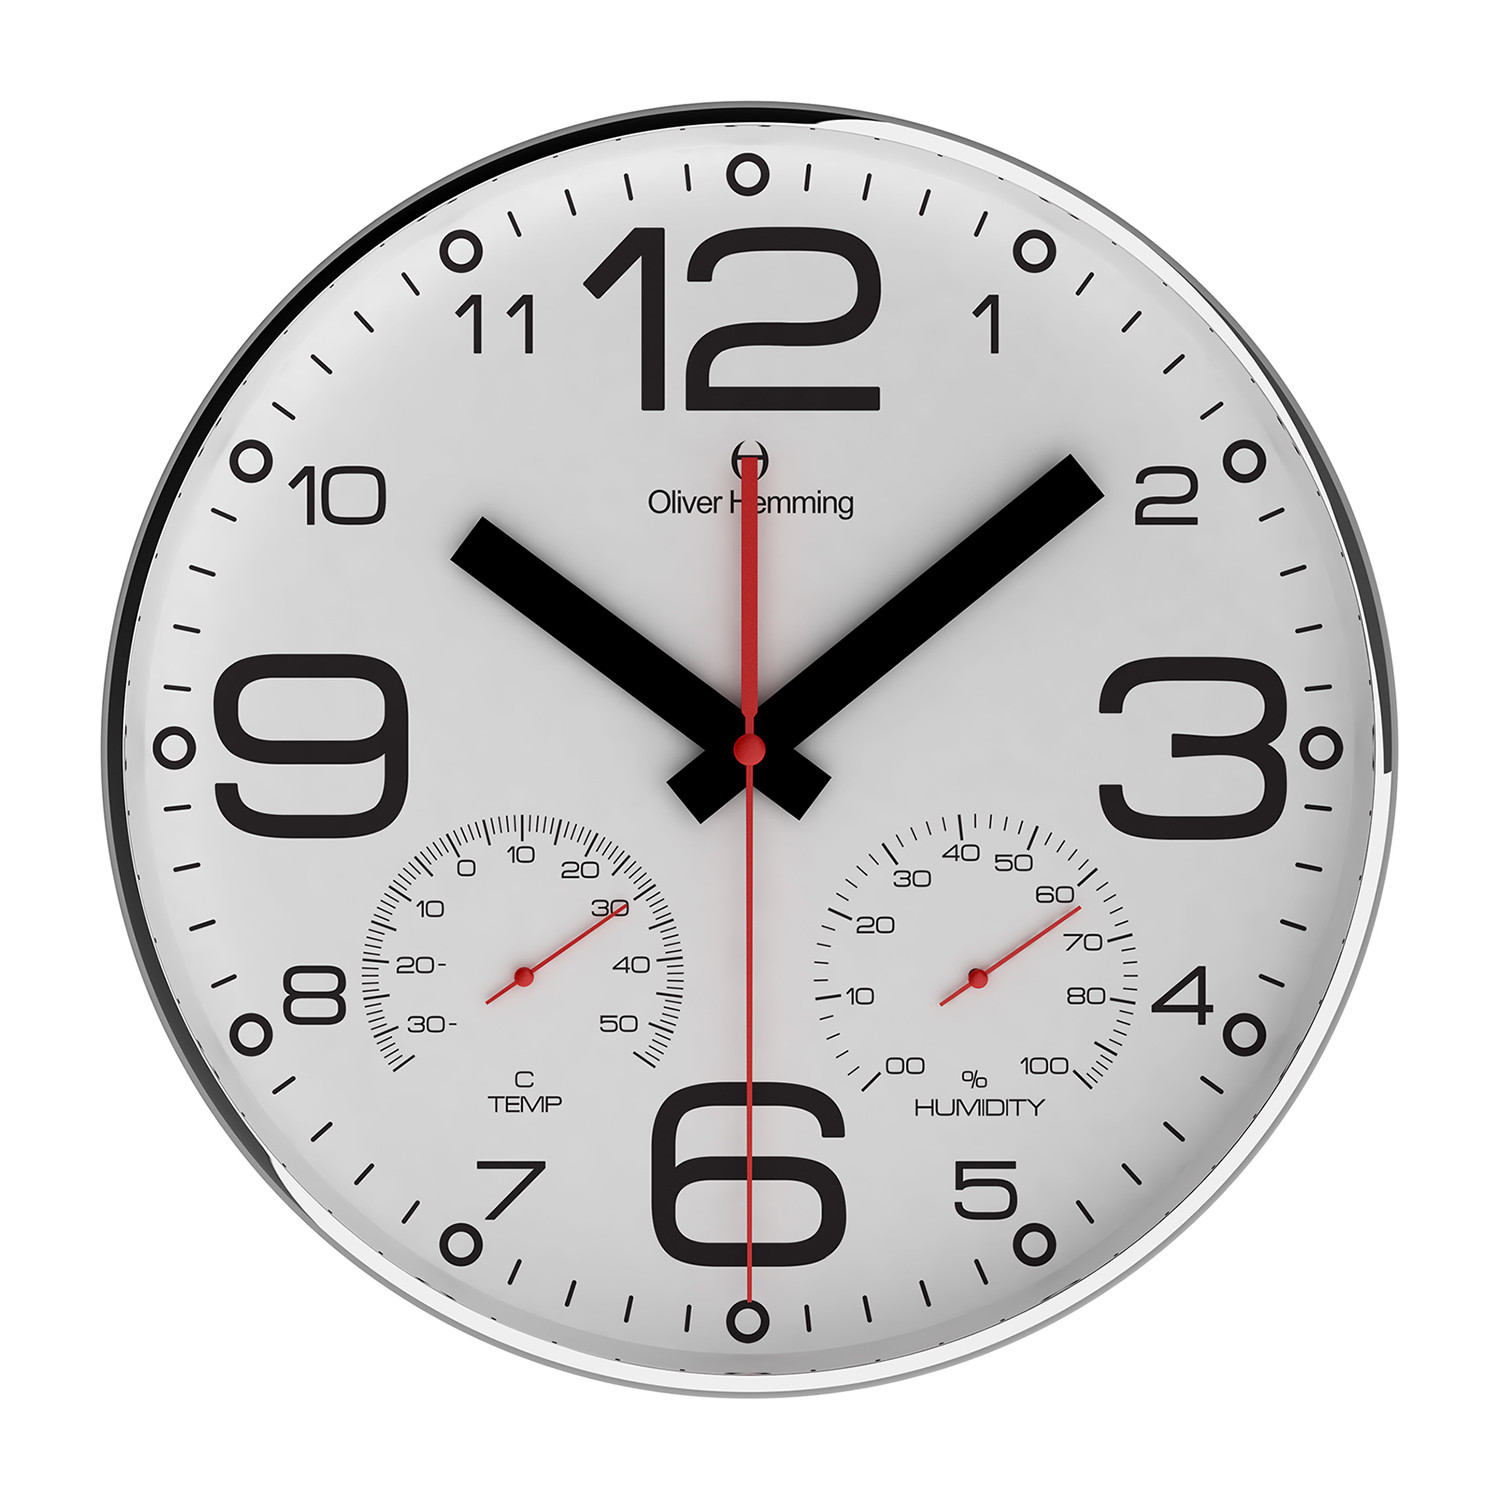 Chrome wall clock weather station w300s51w oliver hemming chrome wall clock weather station w300s51w amipublicfo Image collections